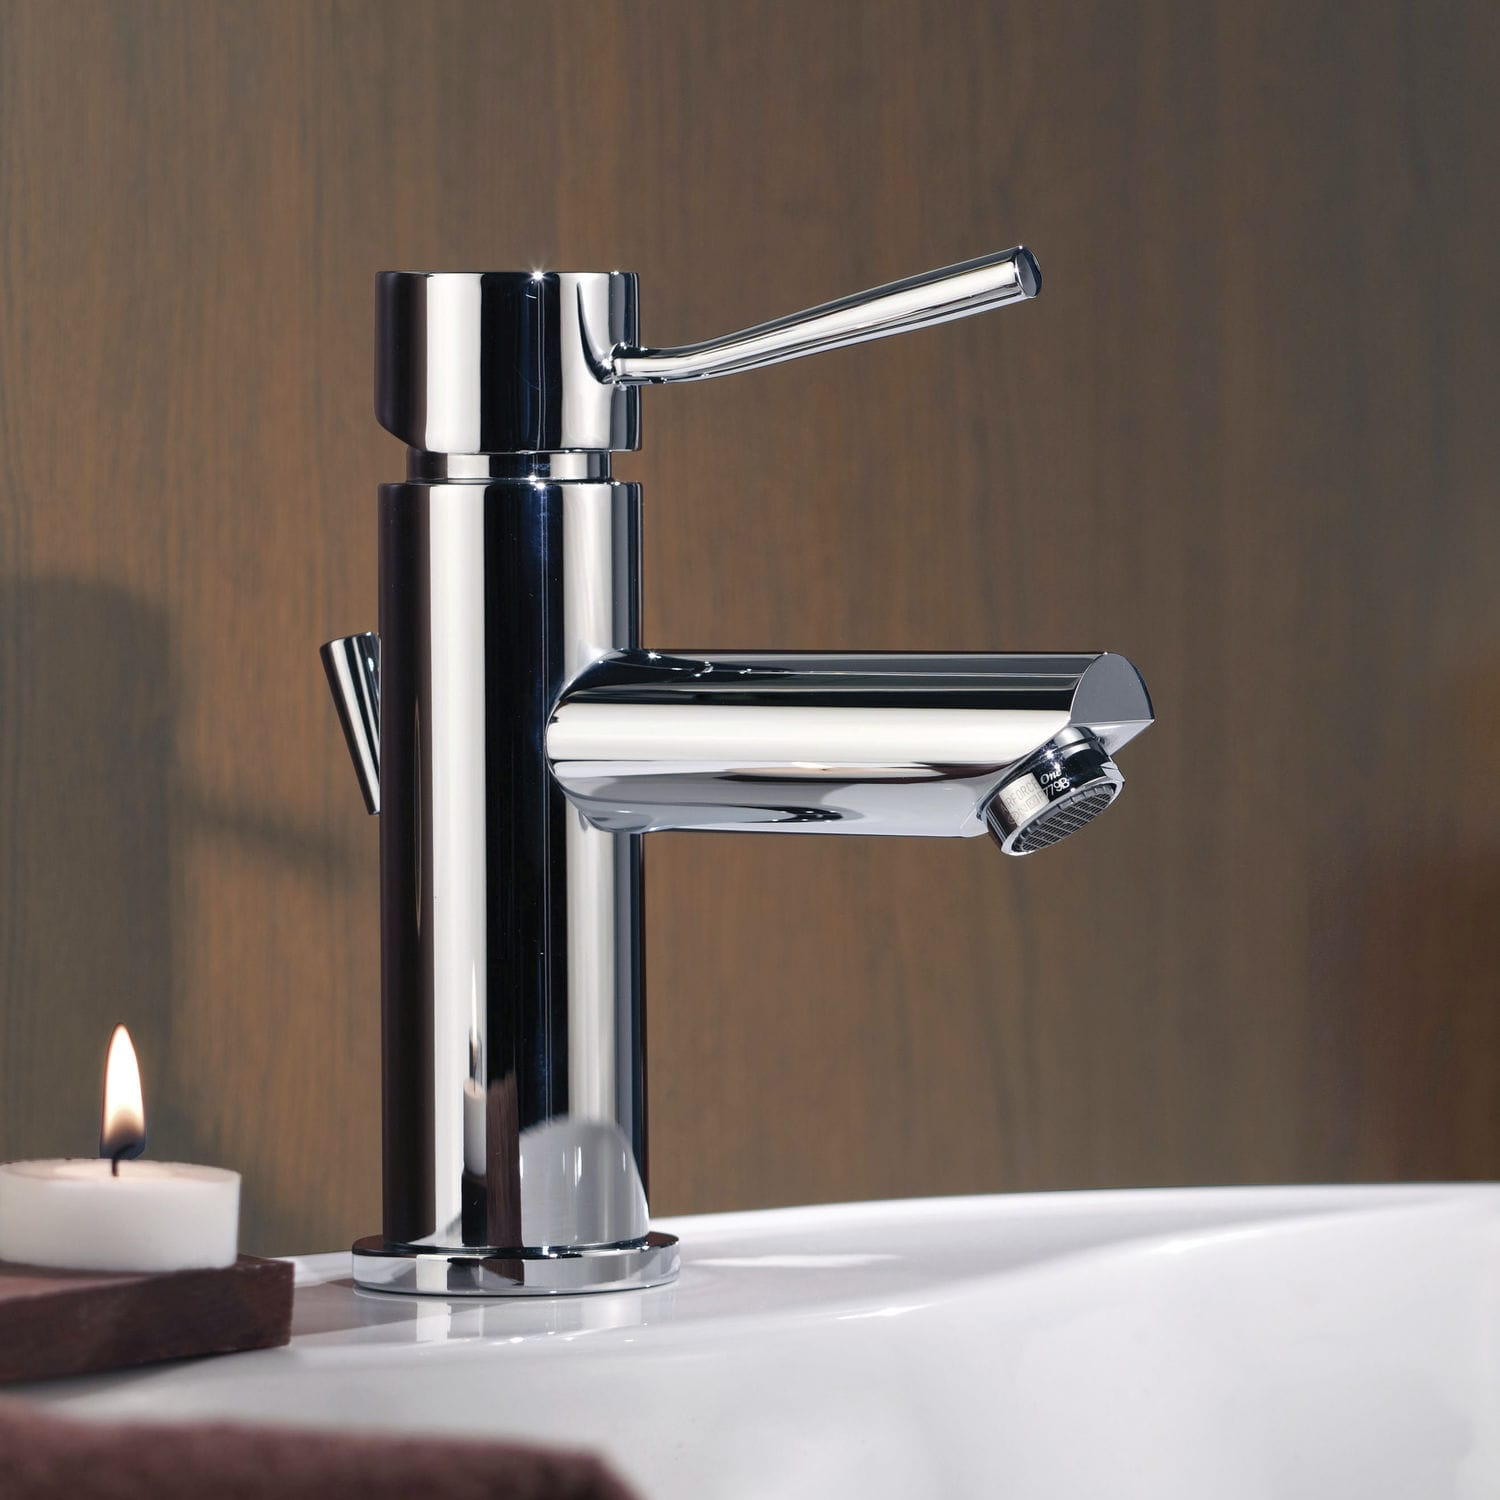 Washbasin mixer tap / chromed metal / chrome-plated brass / bathroom ...